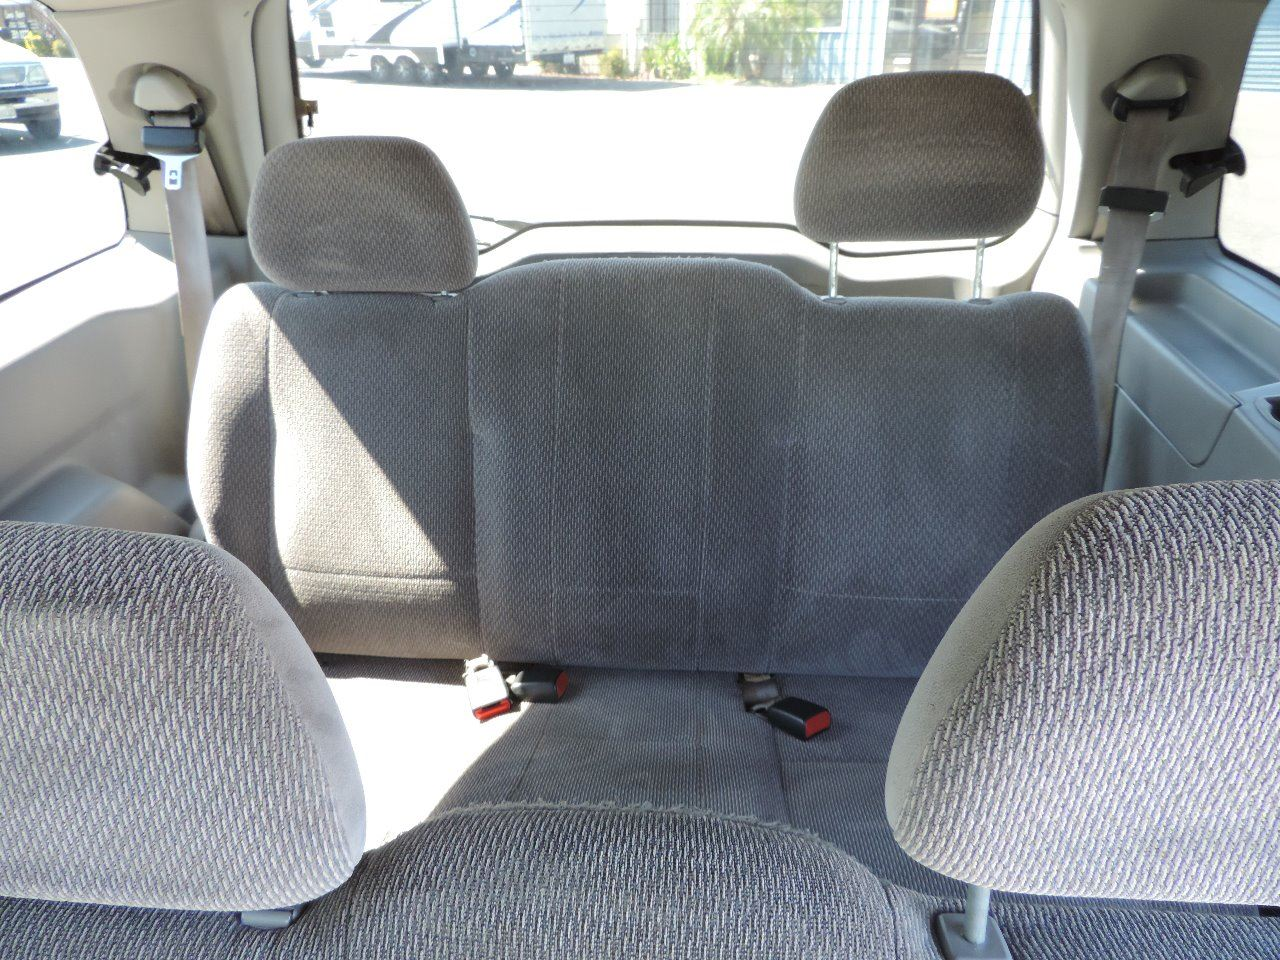 2000 Ford Windstar 3dr Lx Mini Van In Modesto Ca Valley Auto Outlet Contact